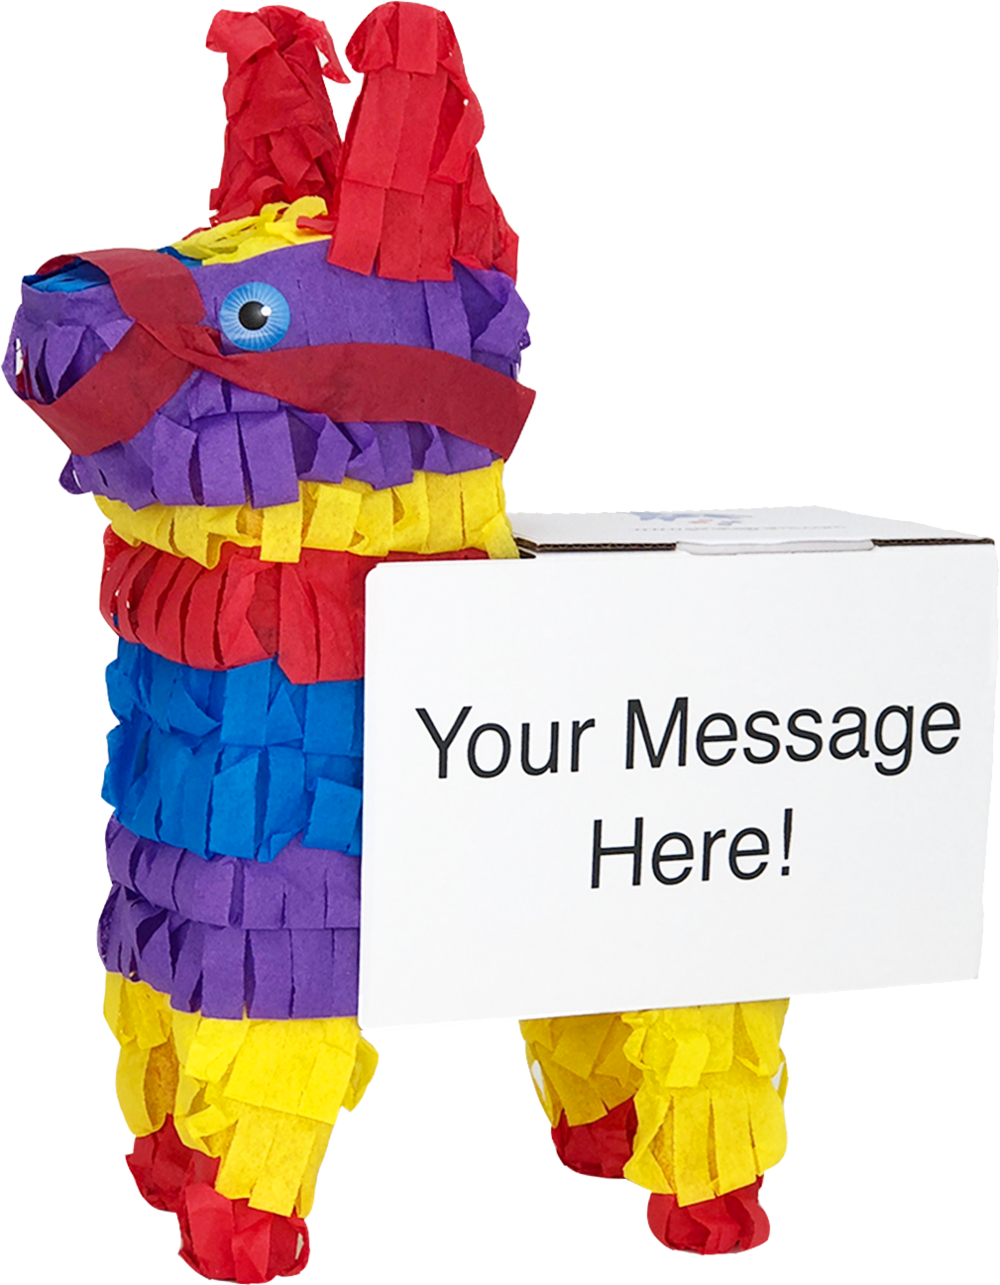 pinata-faceleft-yourmessagehere.png